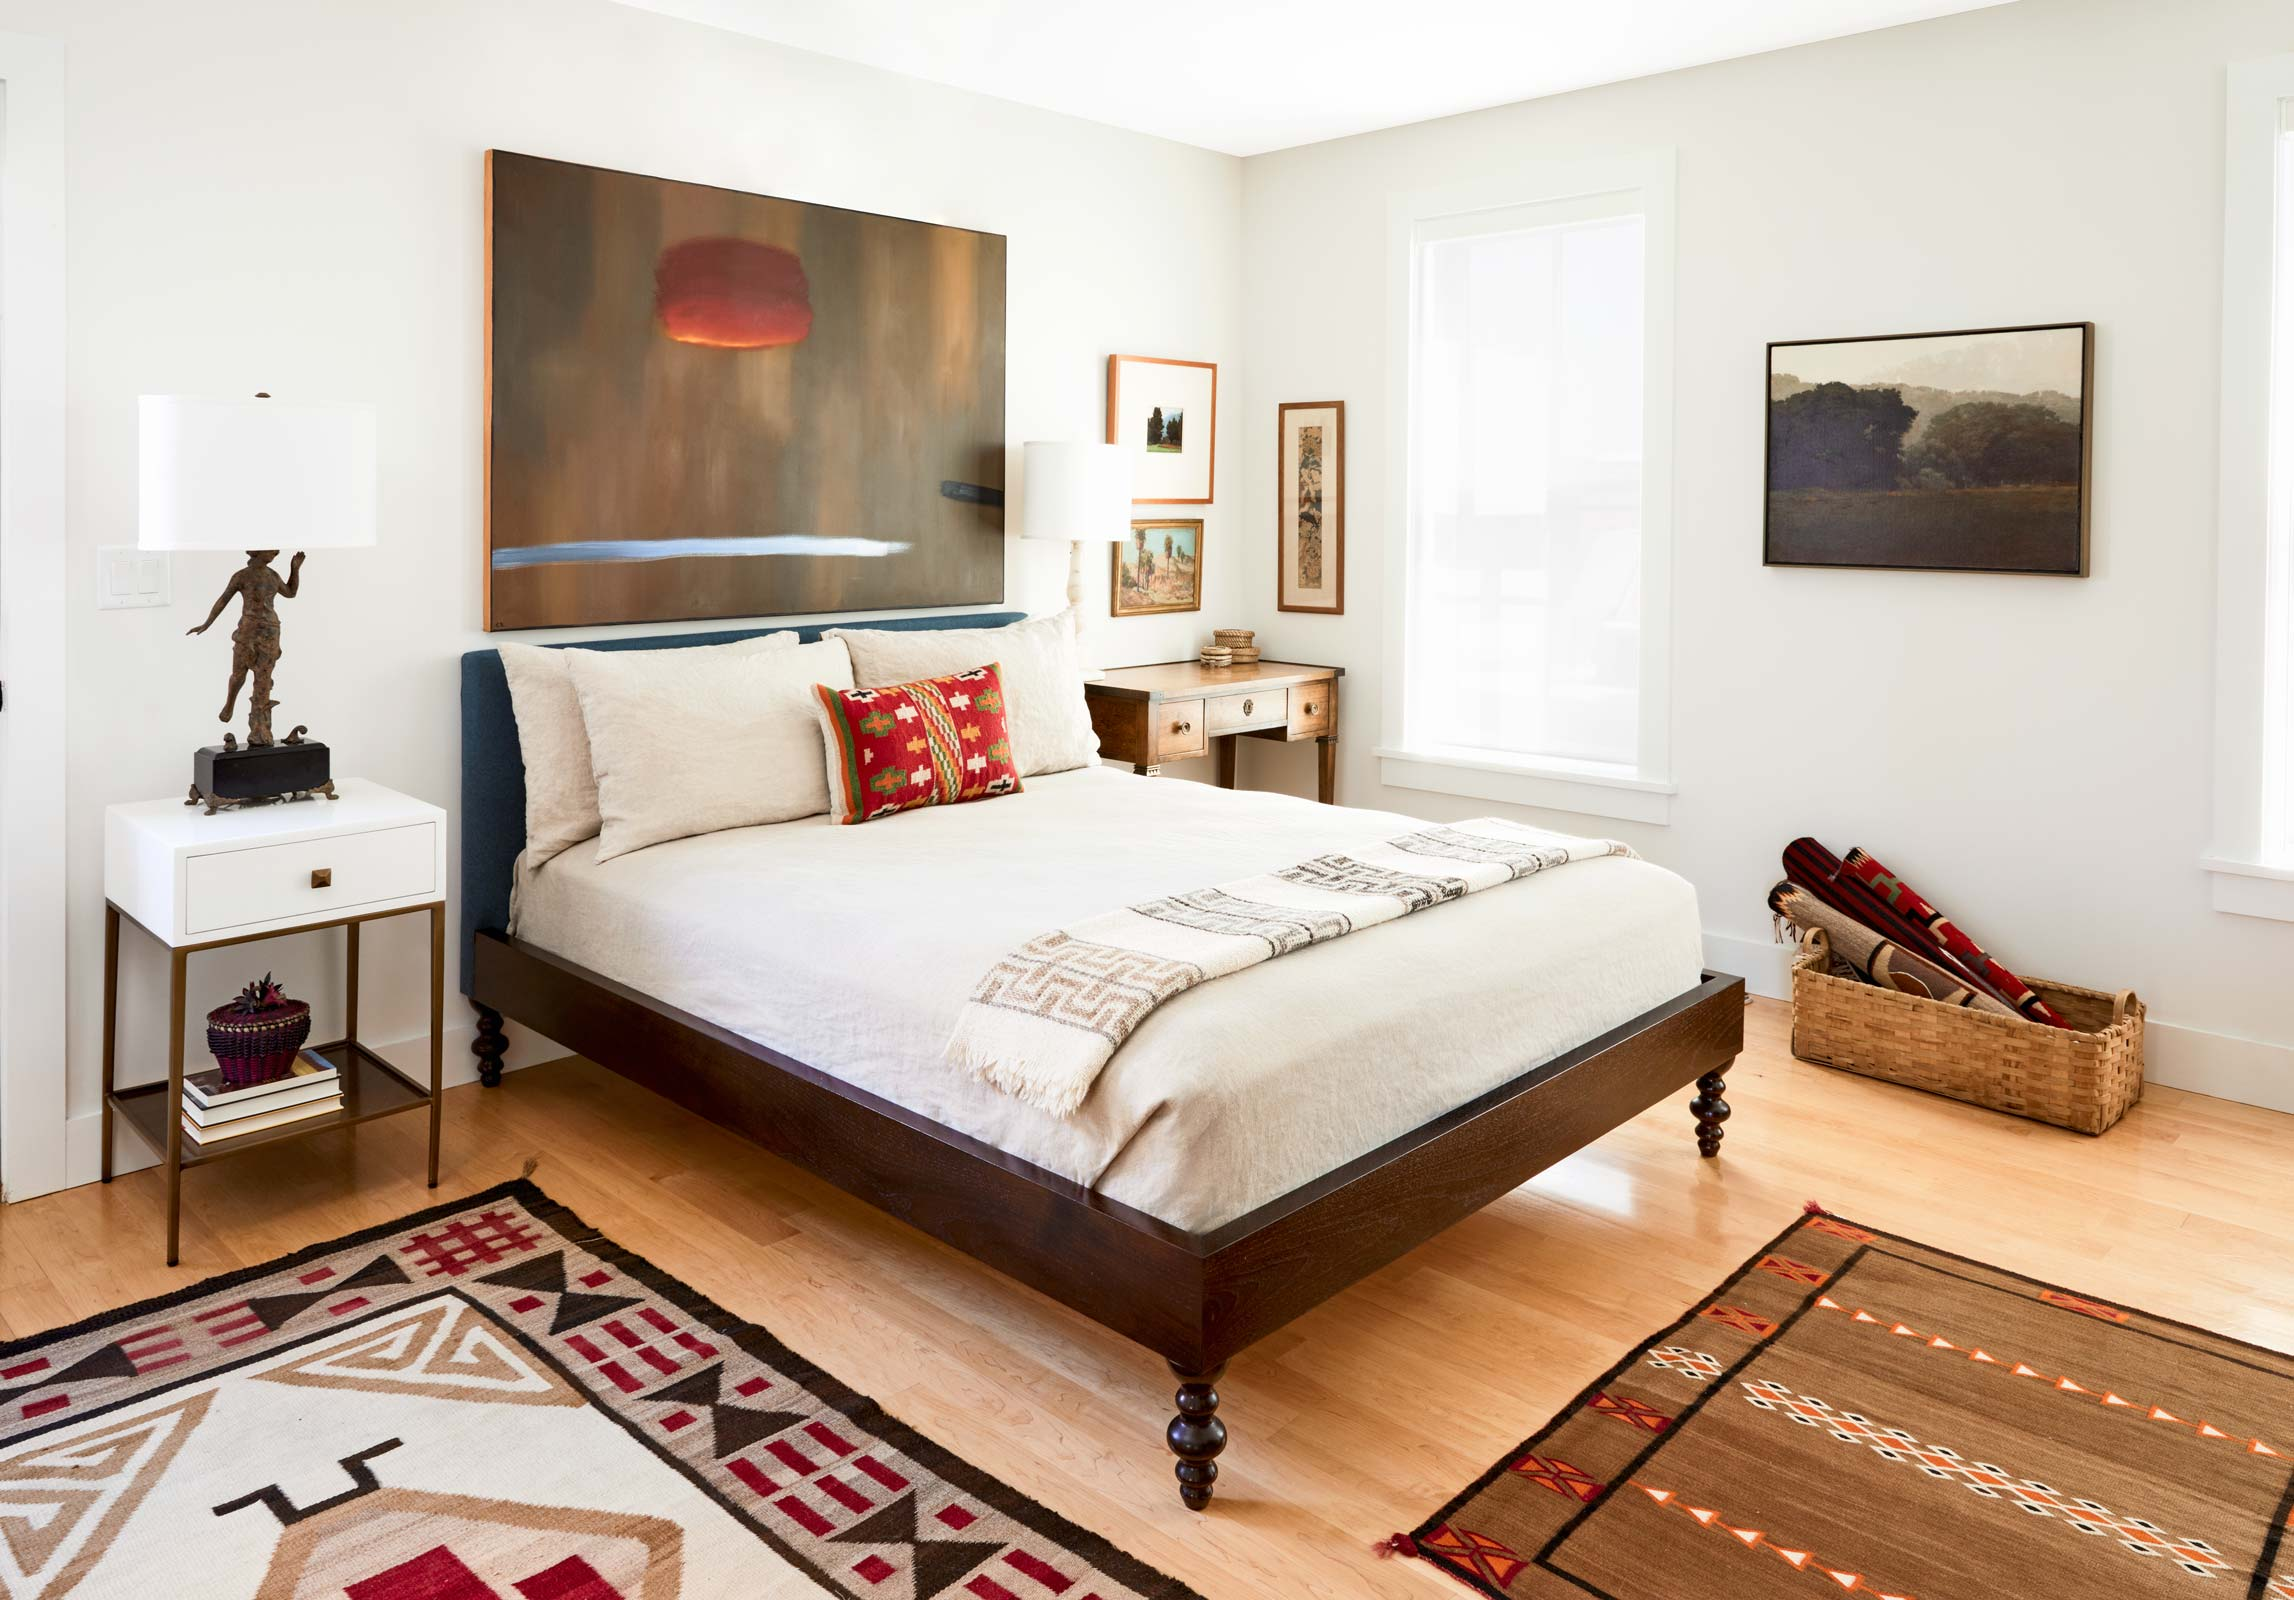 An heirloom writing desk and dancer lamp inherited from Werber's mother adorn the master bedroom, which also features paintings by Los Angeles artist Curtis Ridley (over the bed) and Seattle artist Marcus Bohne (above the basket).